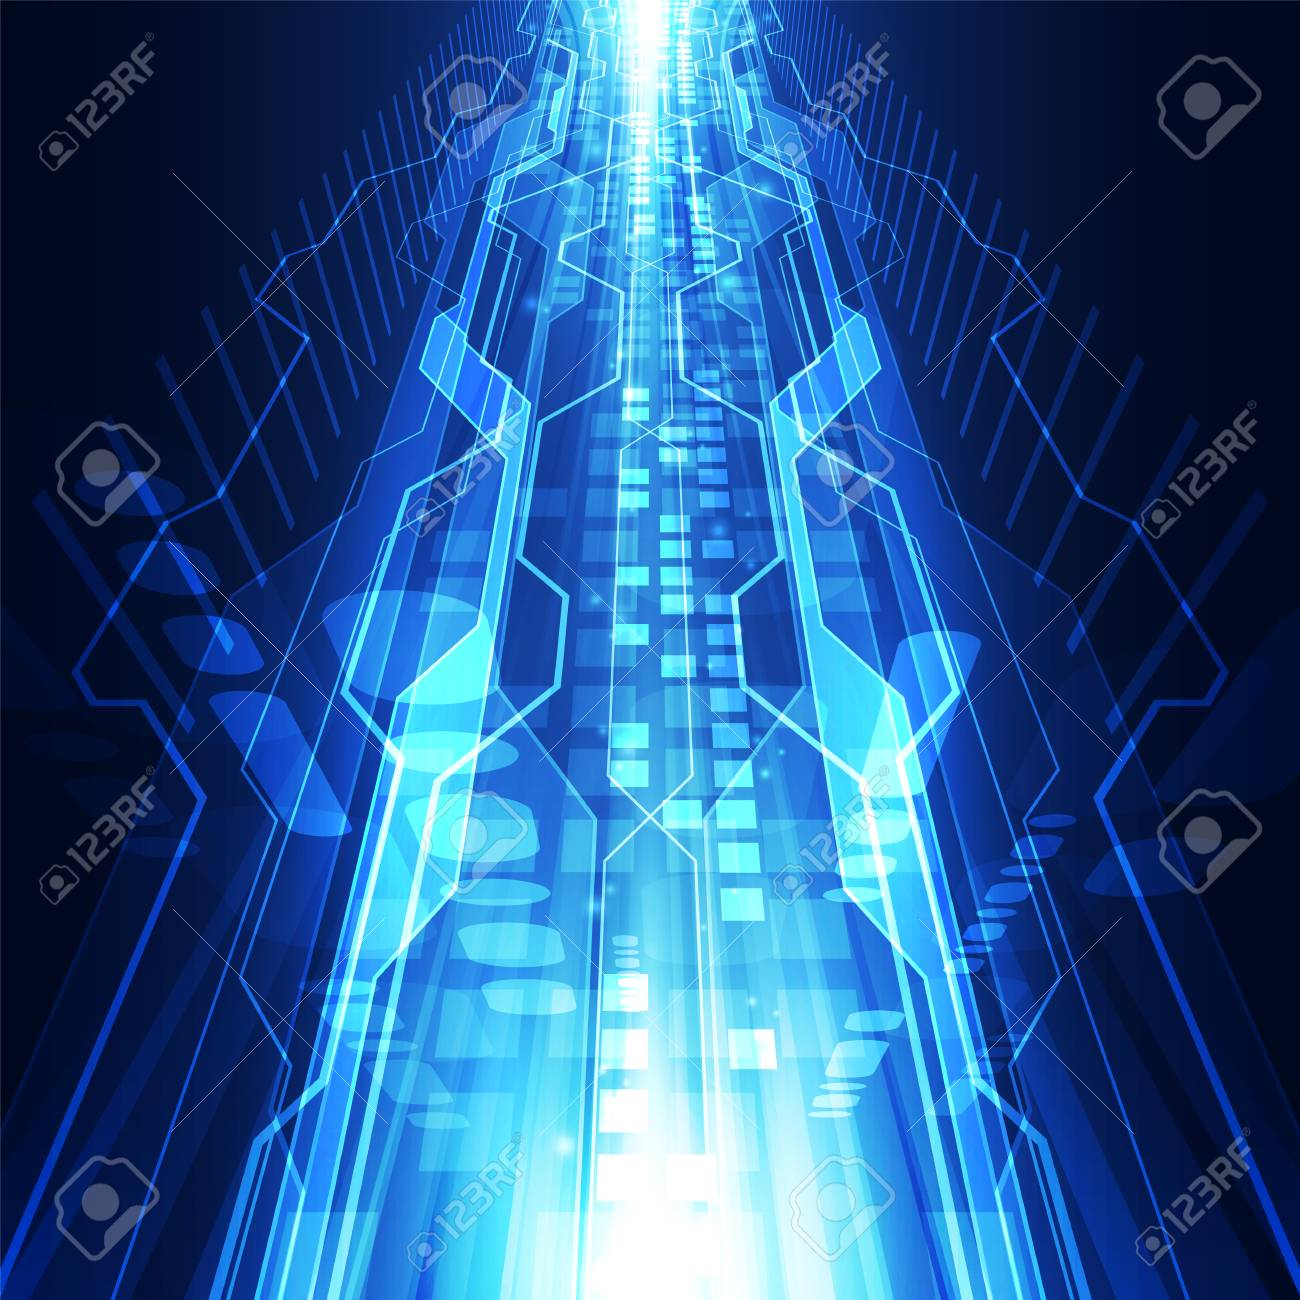 abstract vector futuristic blue connection high digital technology